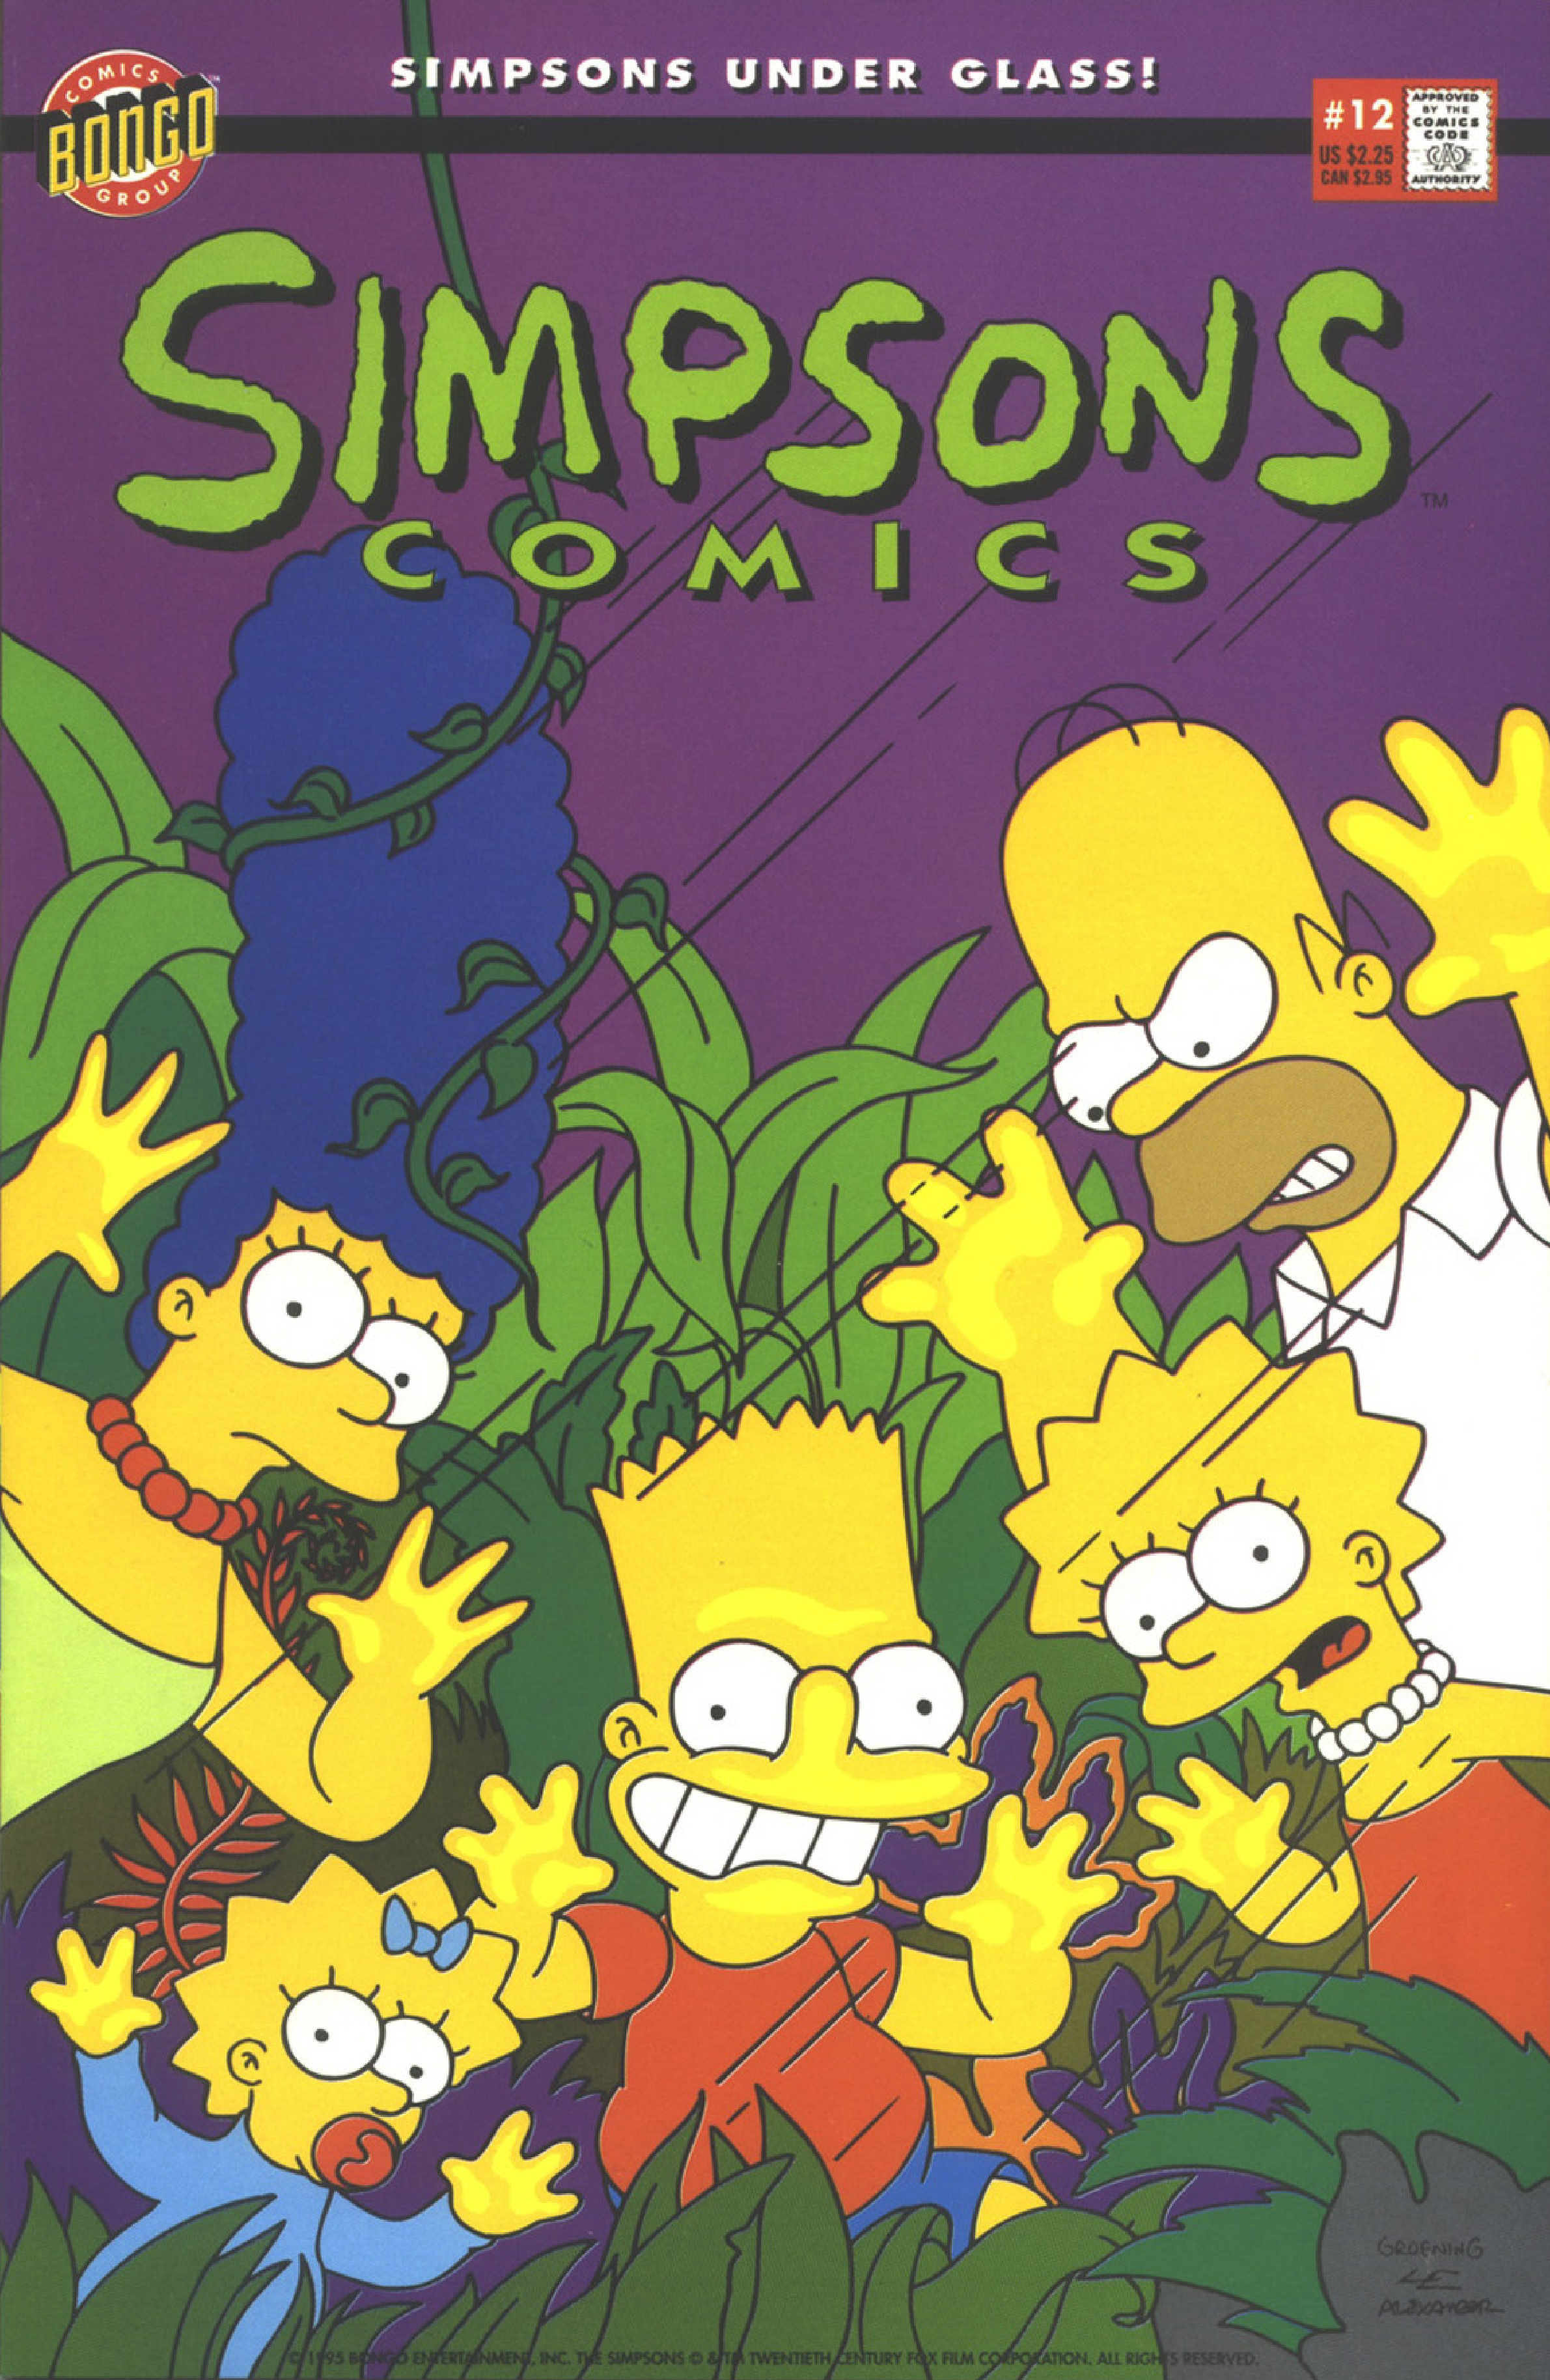 Simpsons Comics 12 (Front Cover).png